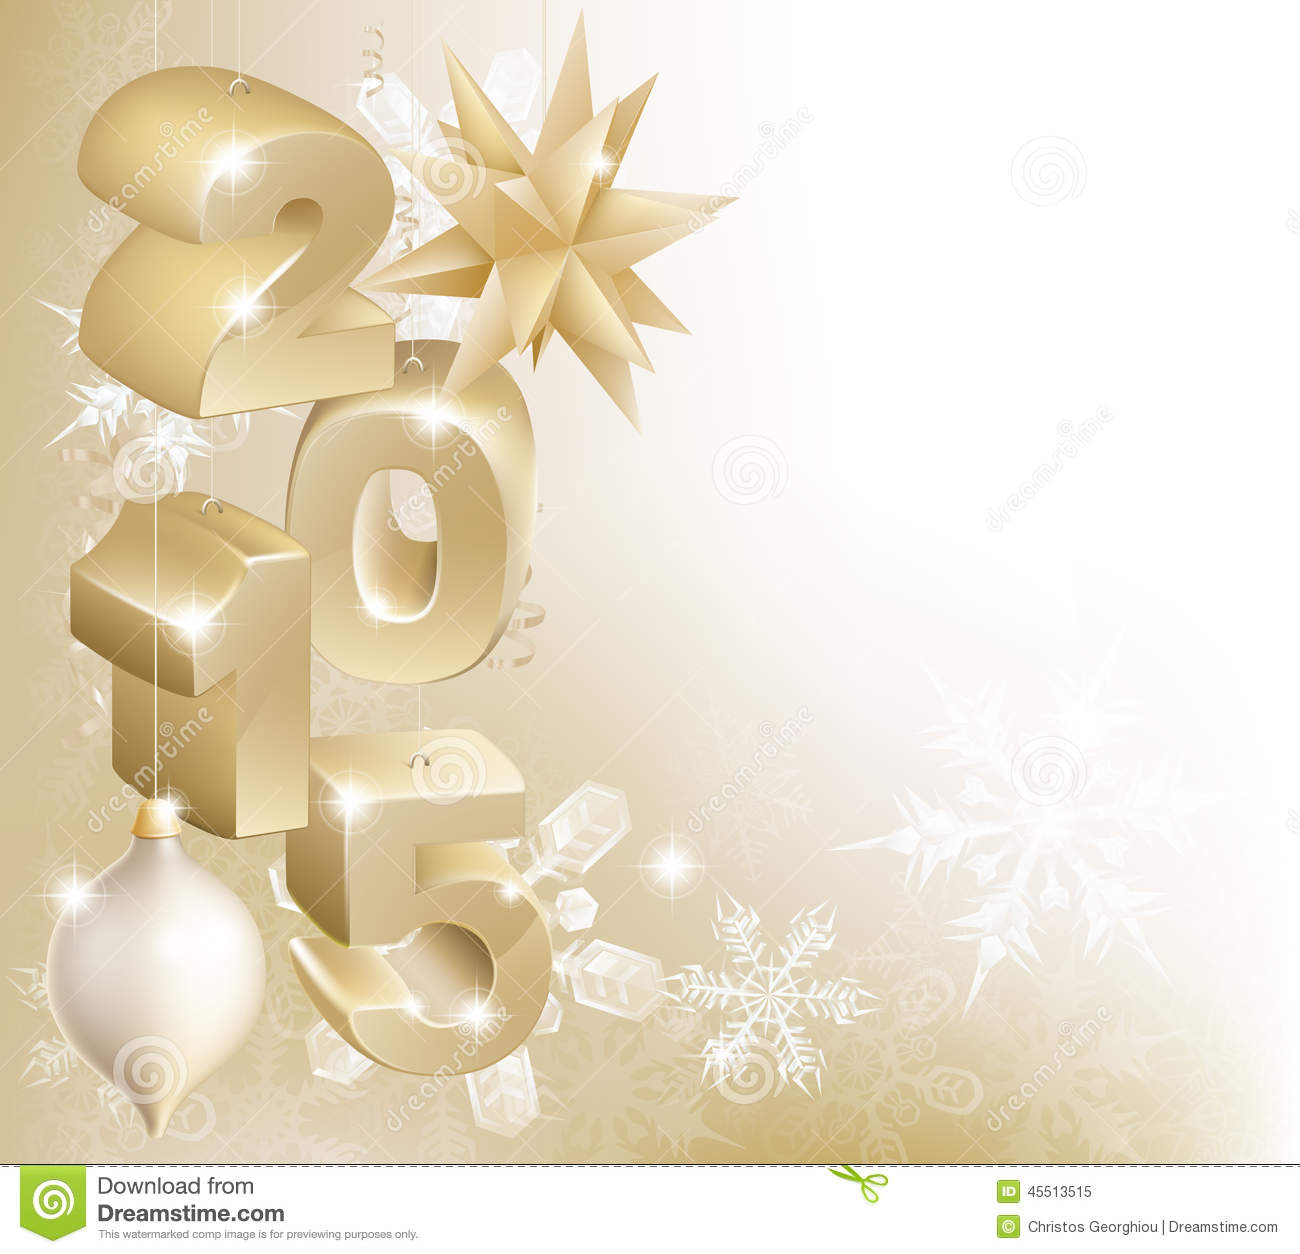 2015 christmas or new year decorations stock vector for Background decoration images